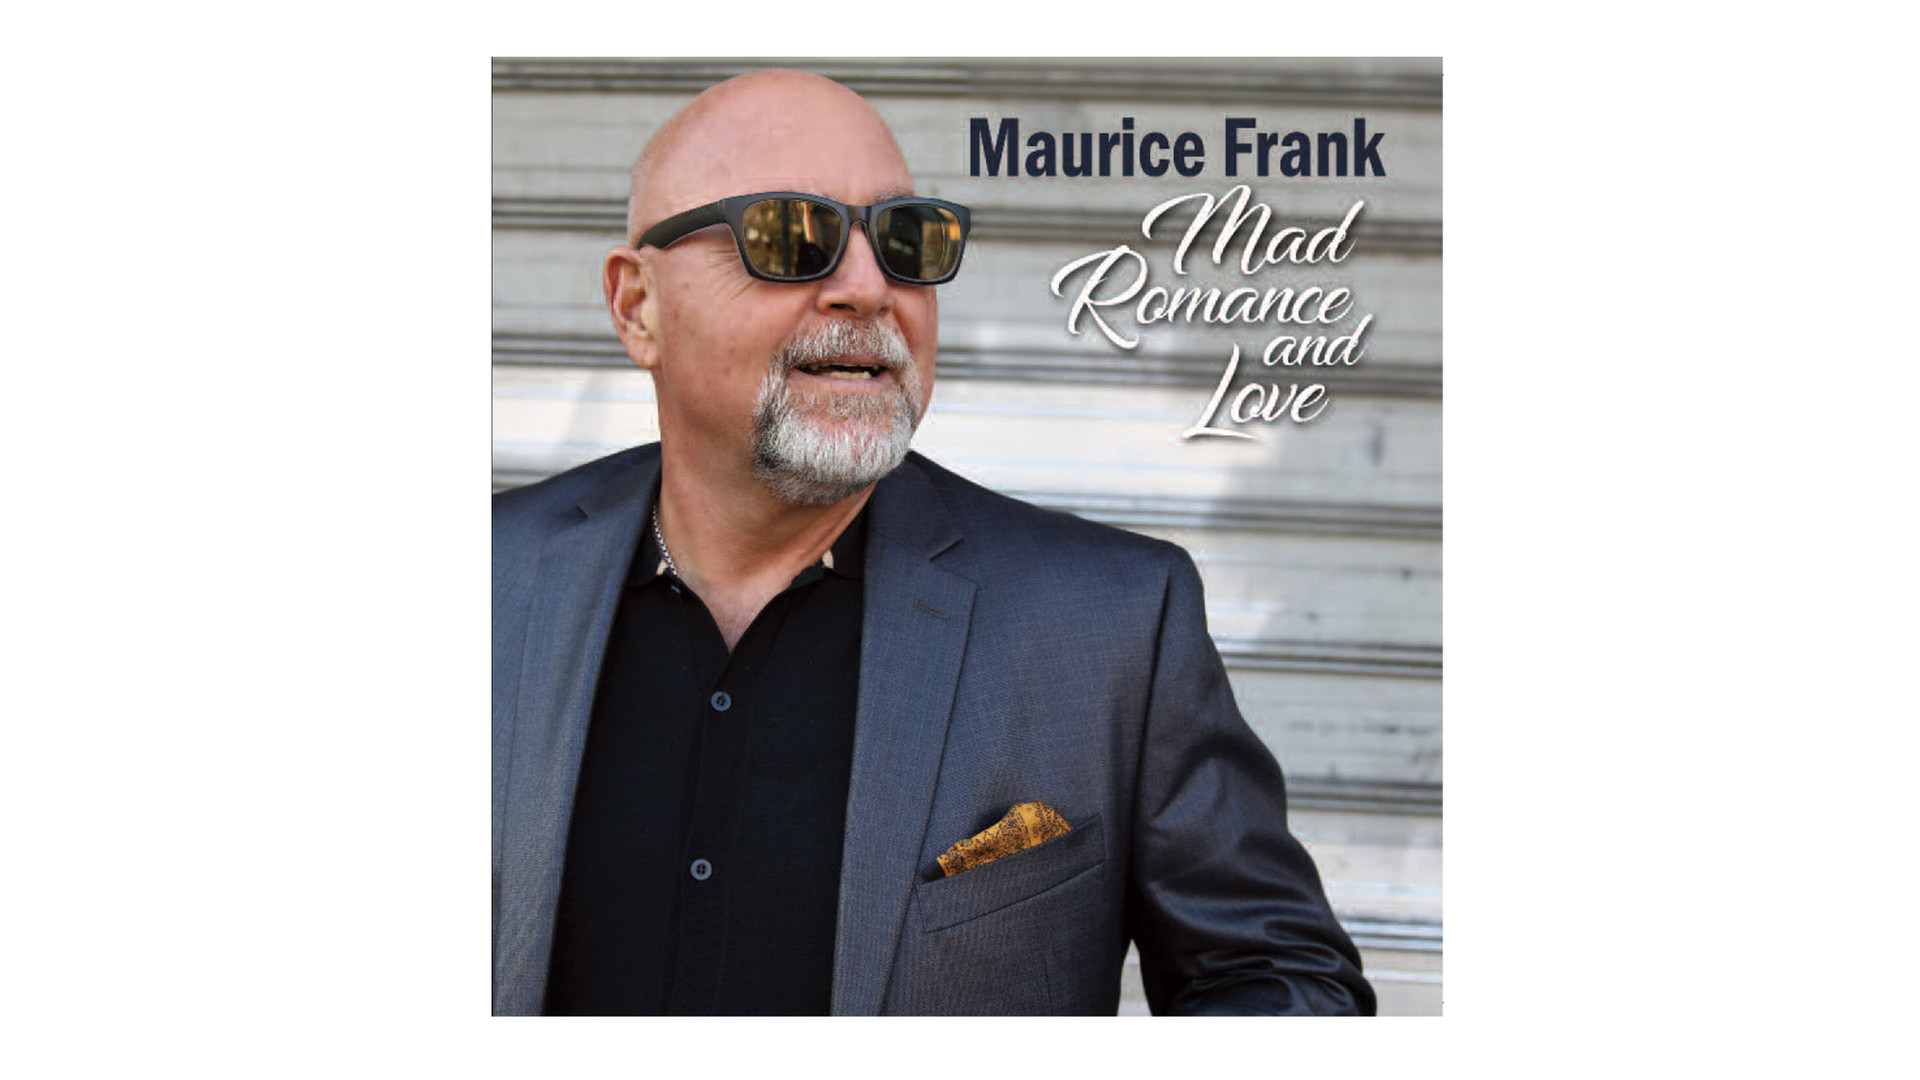 Maurice Frank - Mad Romance and Love